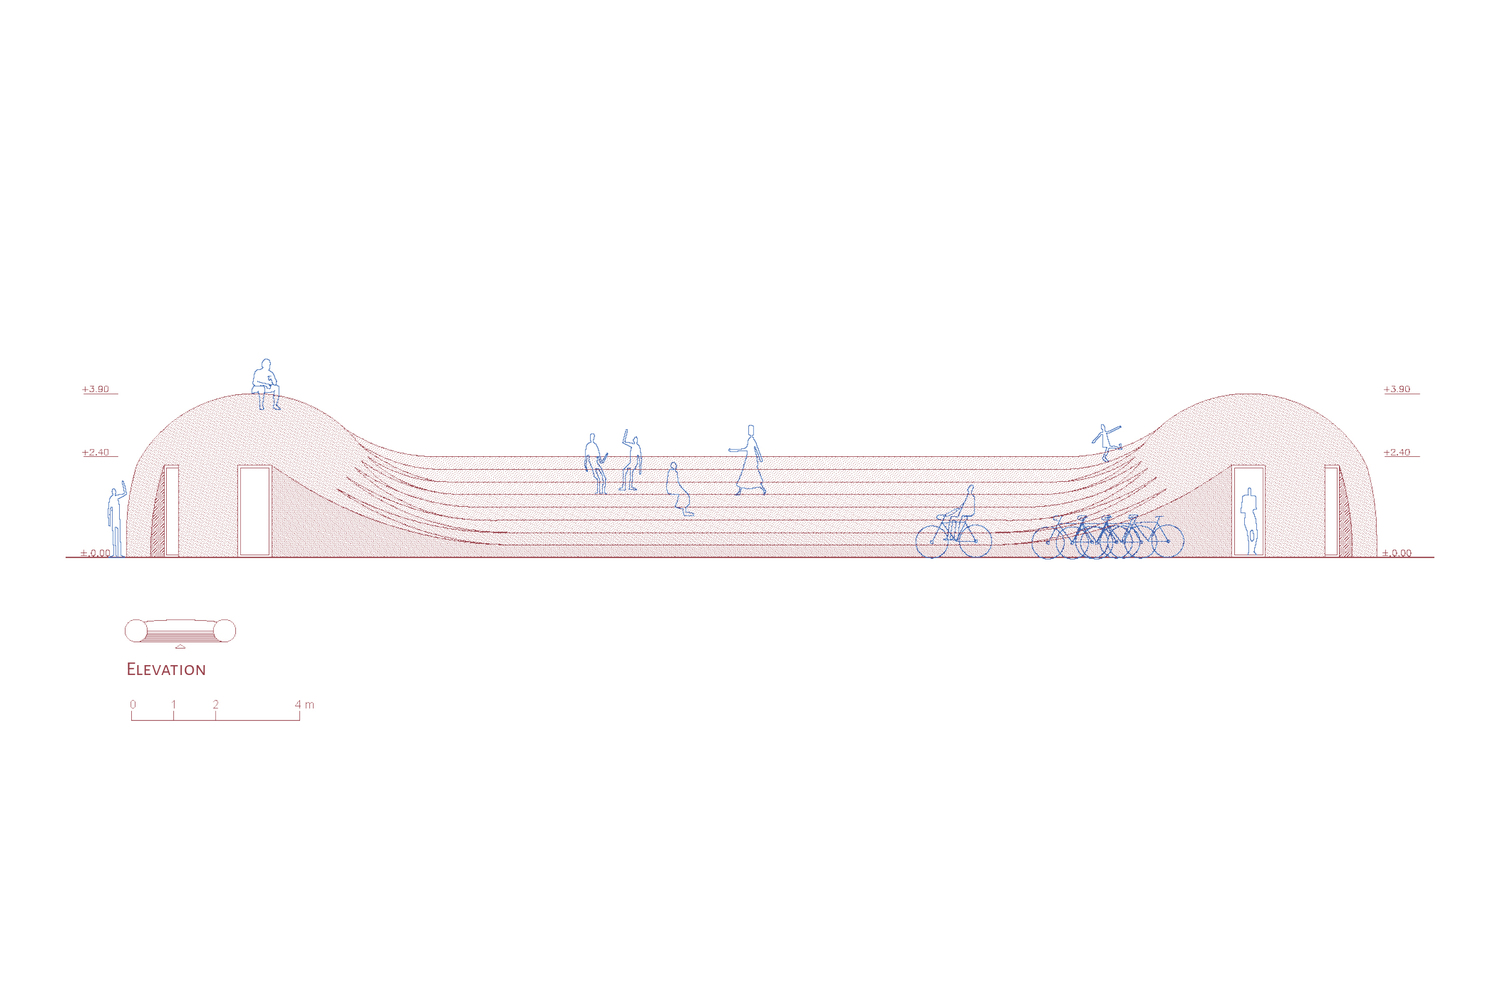 Presence_in_Hormoz-Drawings-3-Elevation.jpg